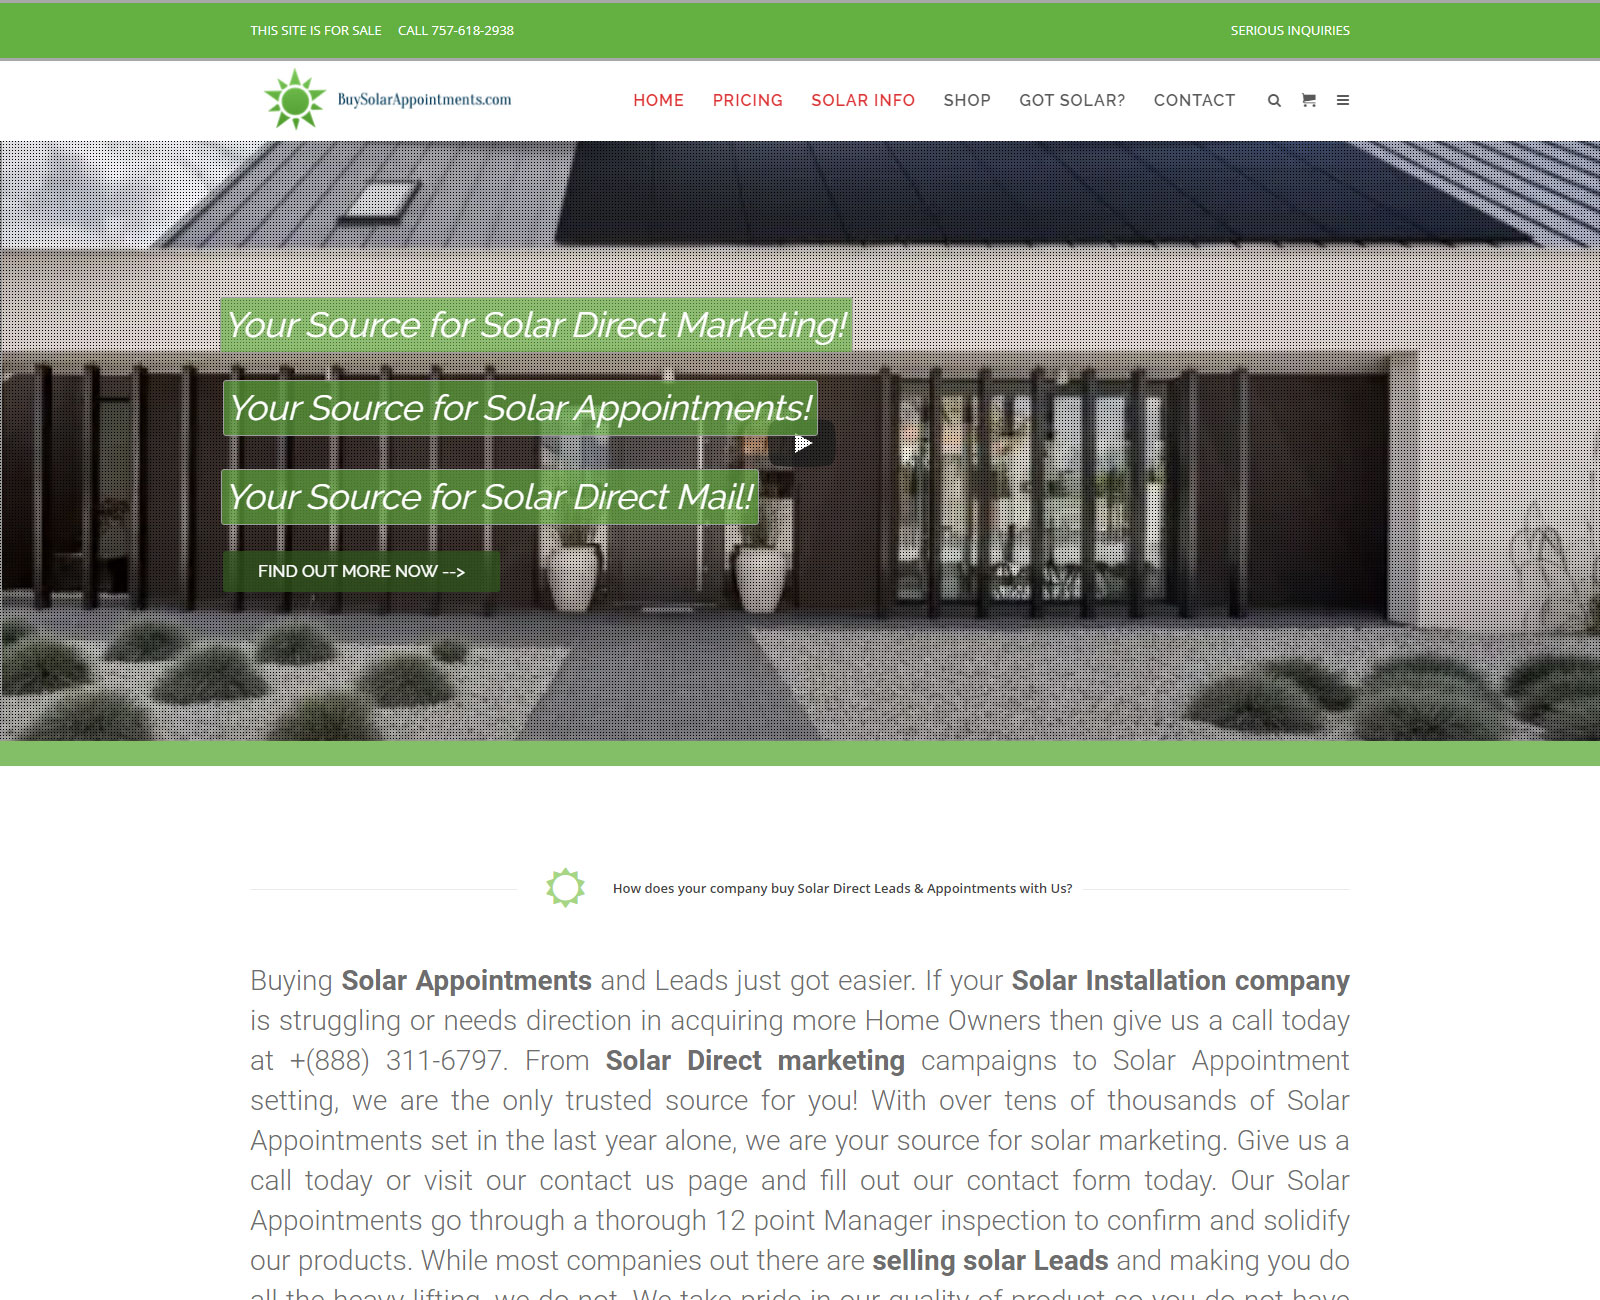 BuySolarAppointments.com